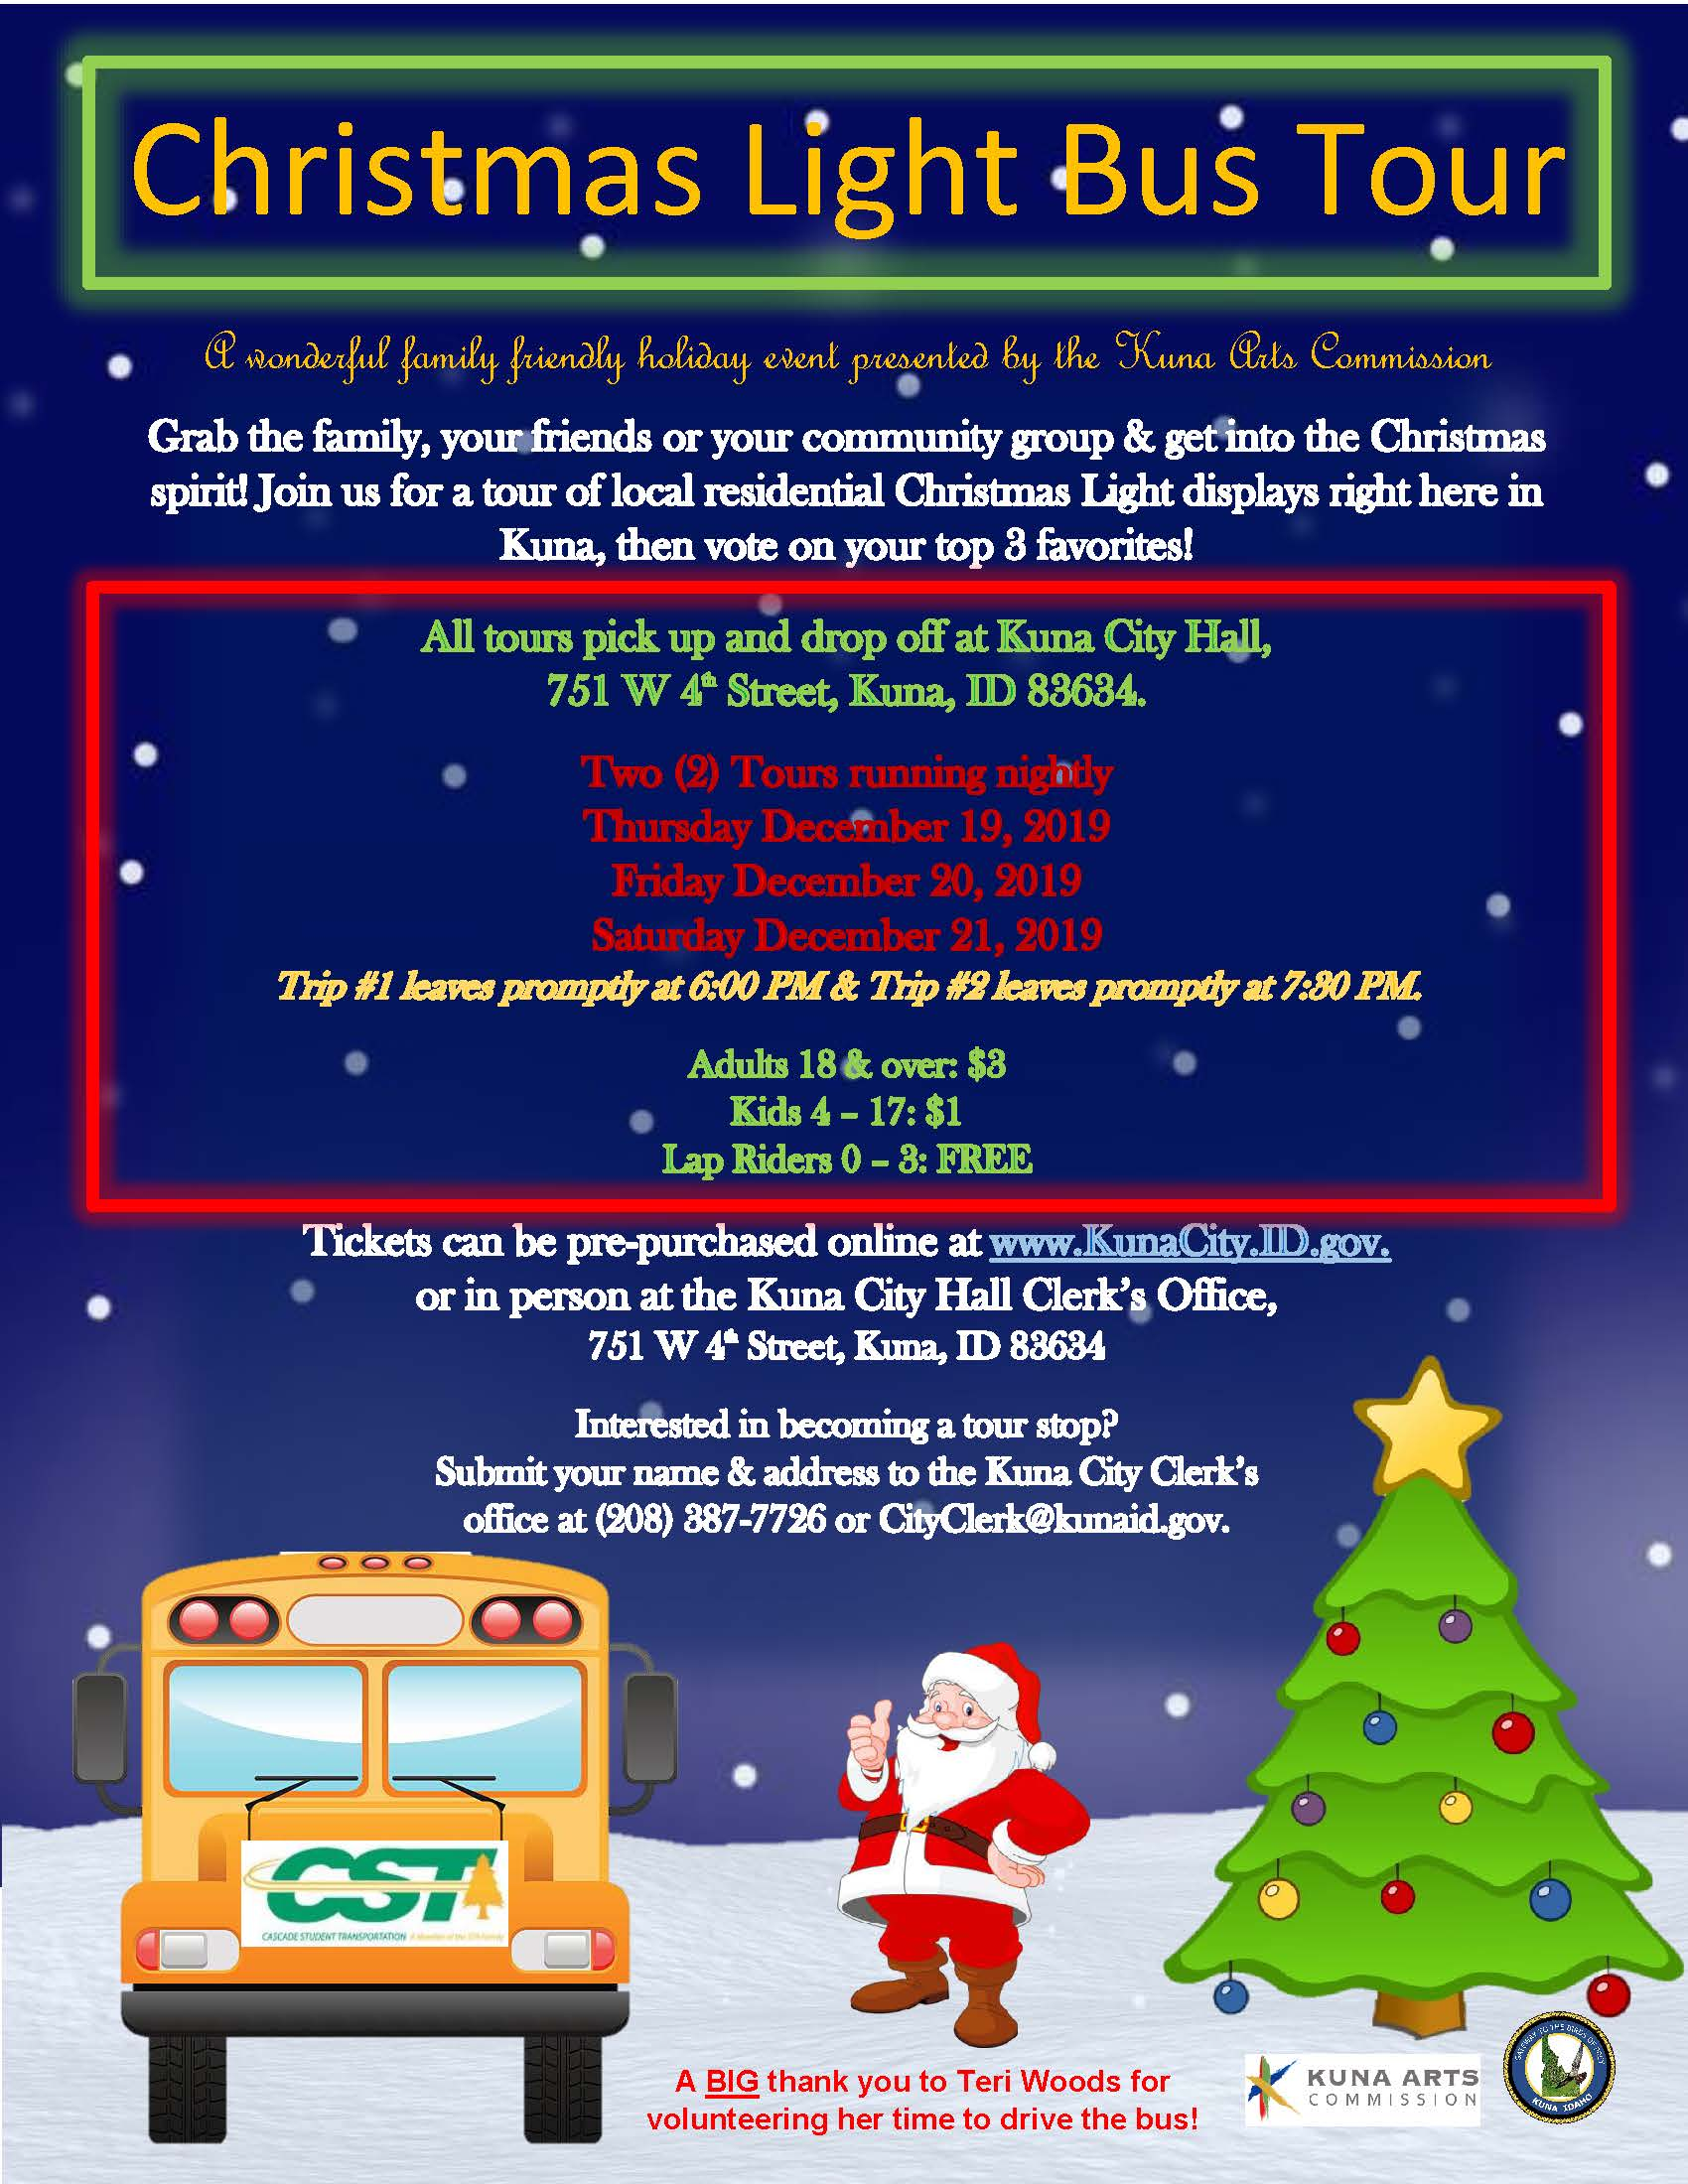 Christmas Lights Bus Tour Flyer 2019 (JPG)